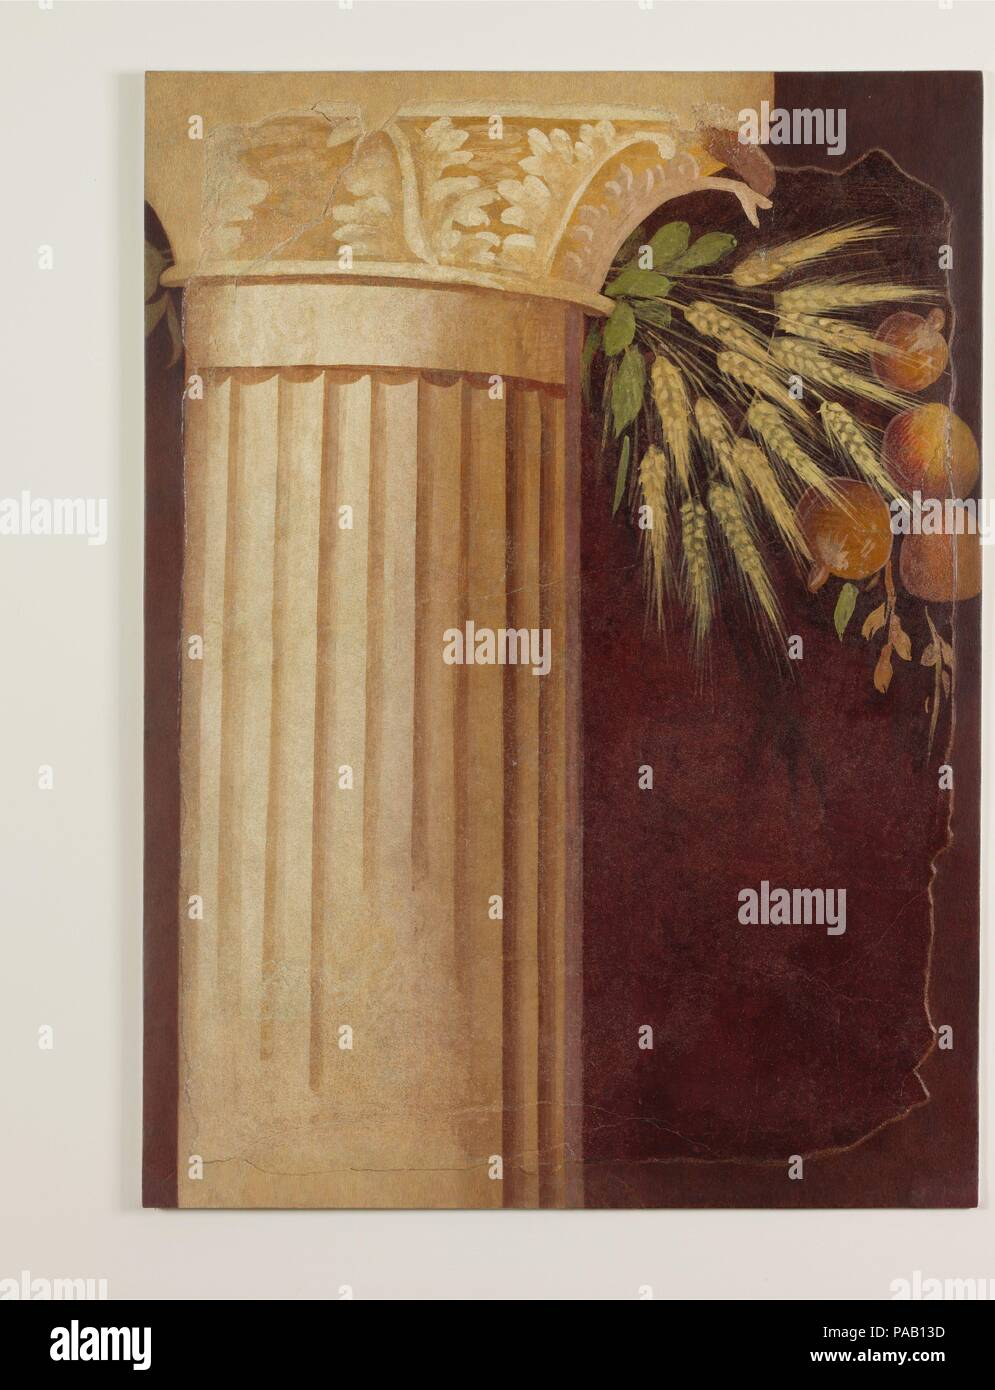 Wall painting fragment from the peristyle of the Villa of P. Fannius Synistor at Boscoreale. Culture: Roman. Dimensions: Overall: 35 3/4 x 25 1/2in. (90.8 x 64.8cm). Date: ca. 50-40 B.C..  Corinthian column with festoon of grain and fruit; from peristyle of the Villa of P. Fannius Synistor at Boscoreale. Museum: Metropolitan Museum of Art, New York, USA. - Stock Image